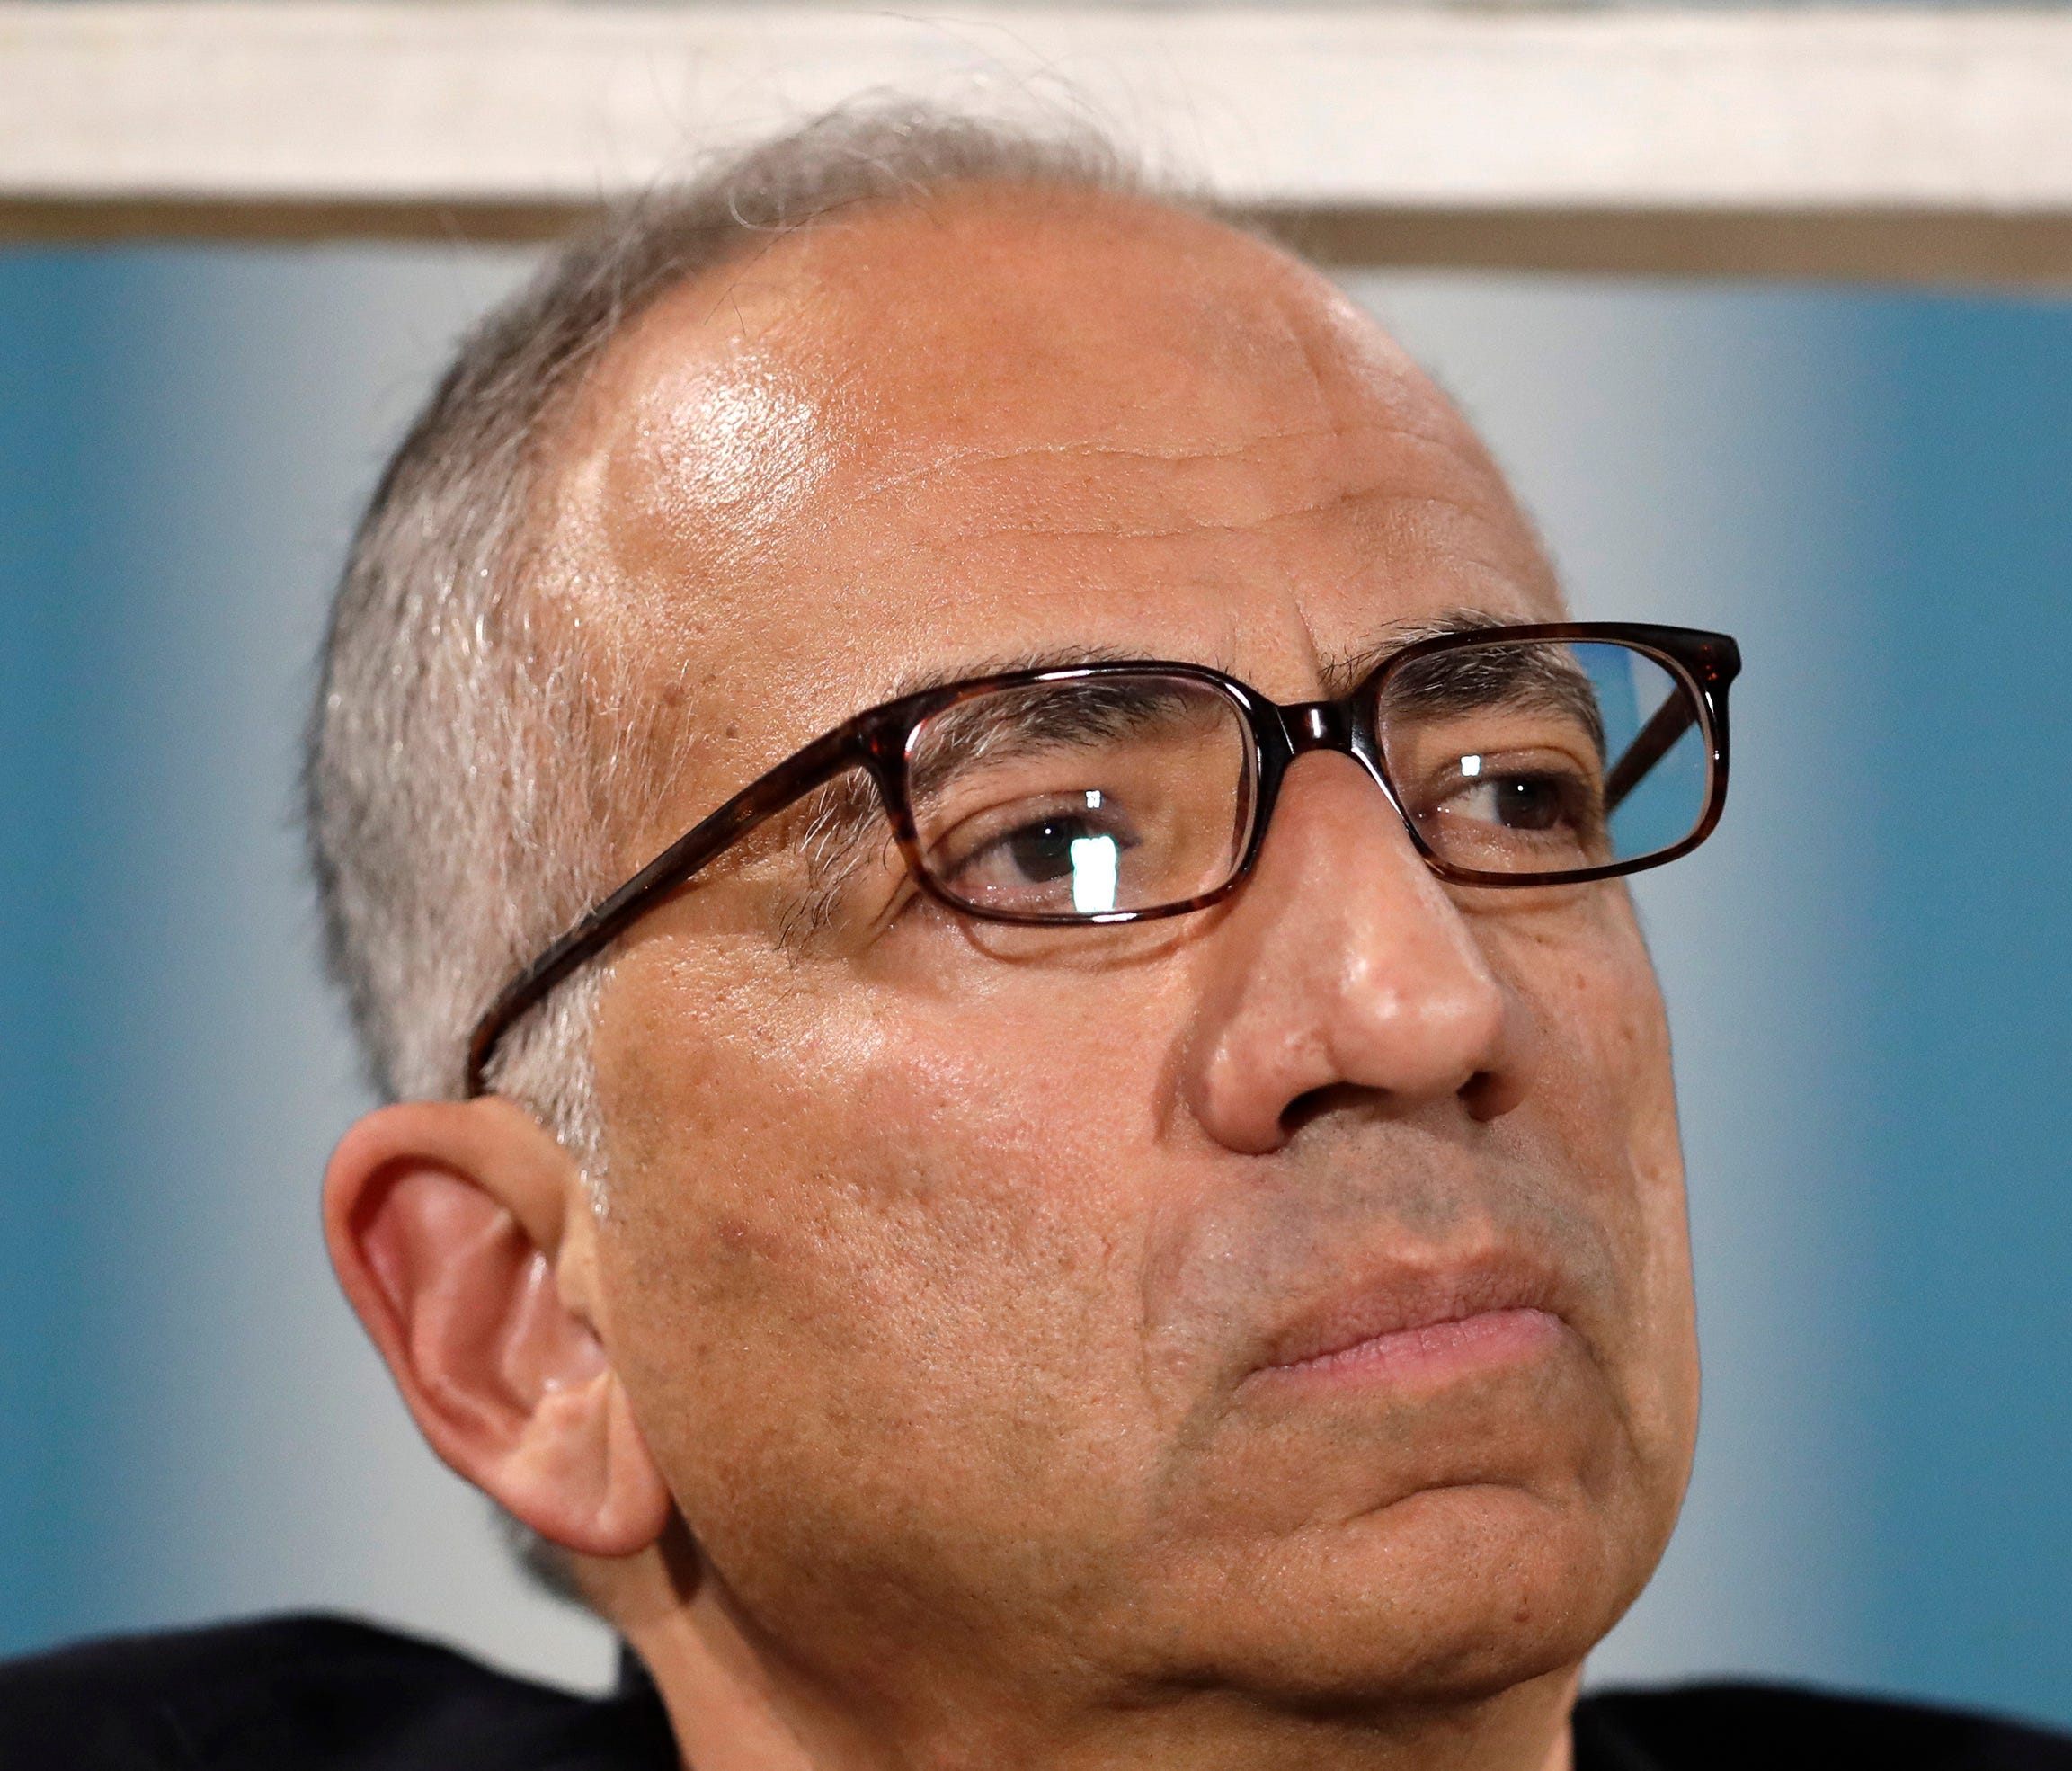 Carlos Cordeiro, one of three co-chairs of the United bid, has made visits to Europe and Asia to campaign for the 2026 World Cup.